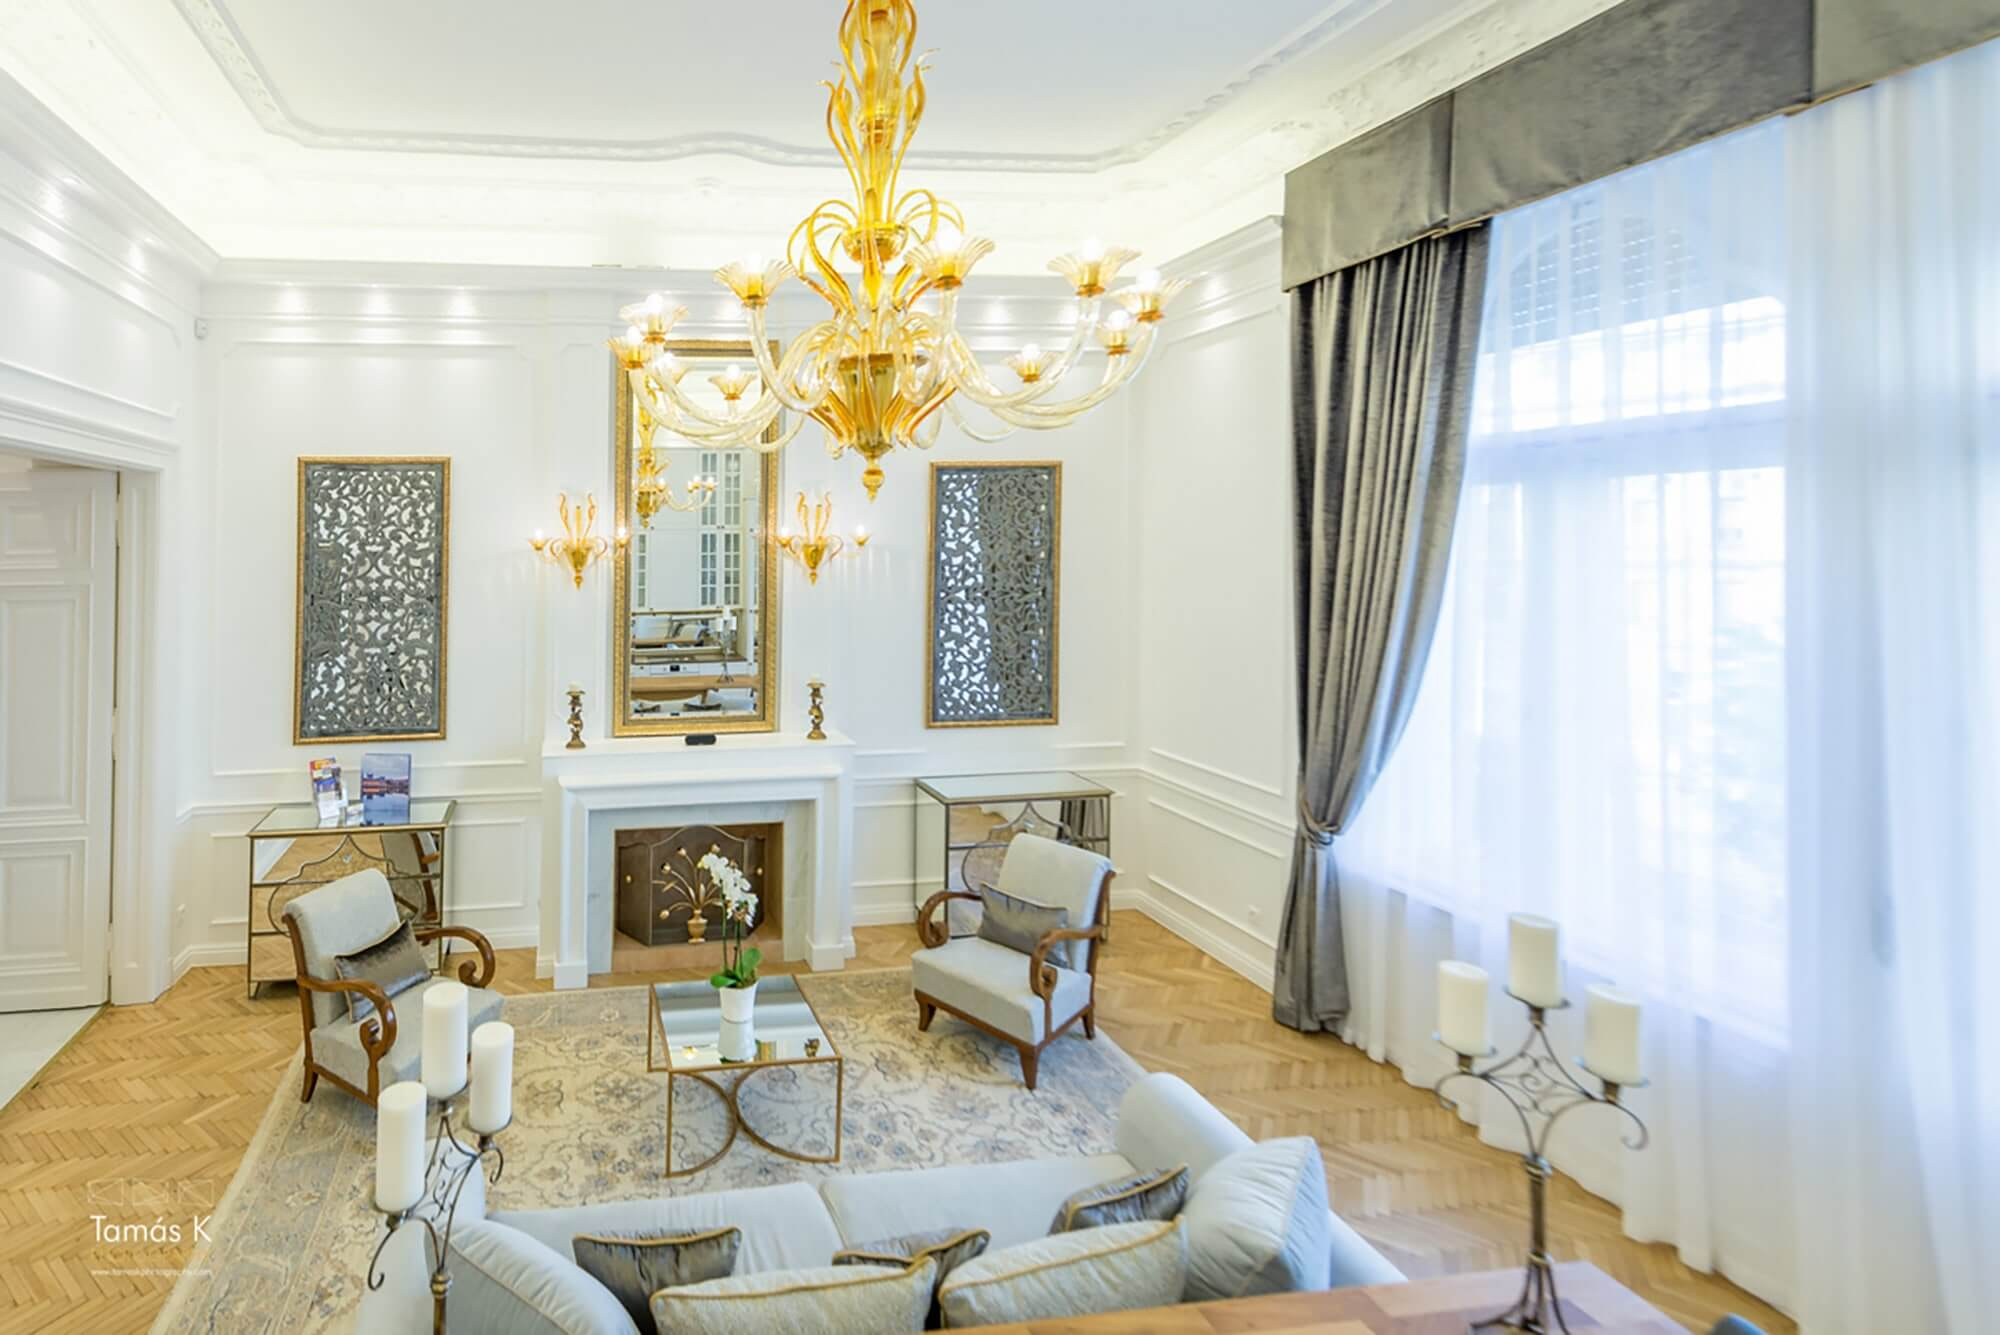 Holiday apartment Budapest - living area - fireplace - golden chandelier - large sofa beds